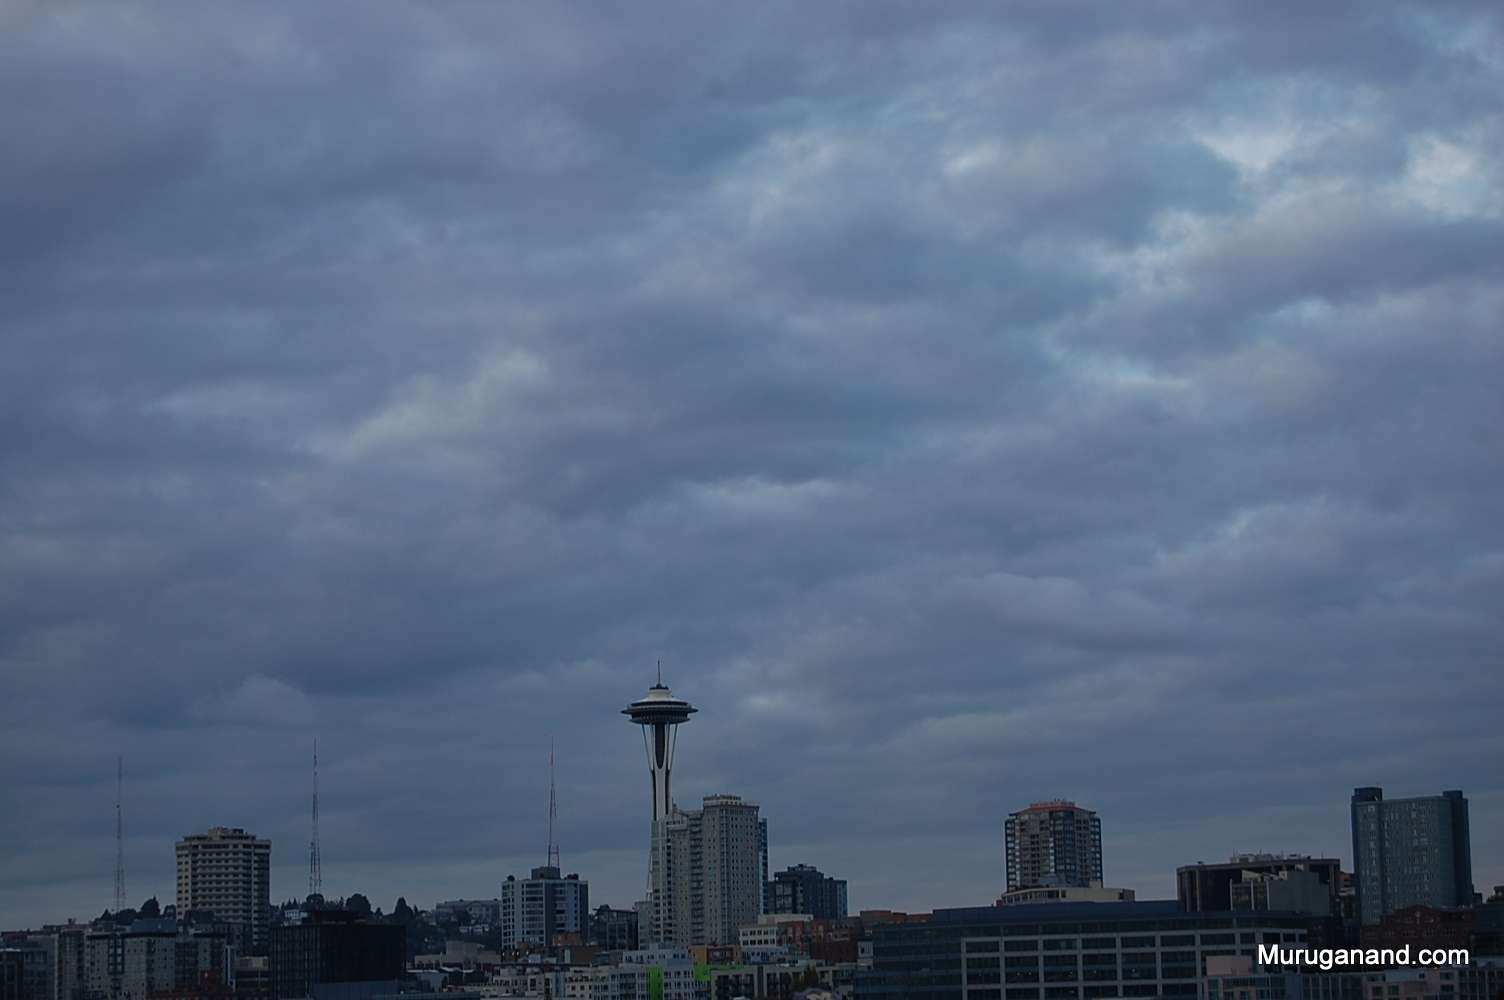 Our ferry is approaching Seattle.